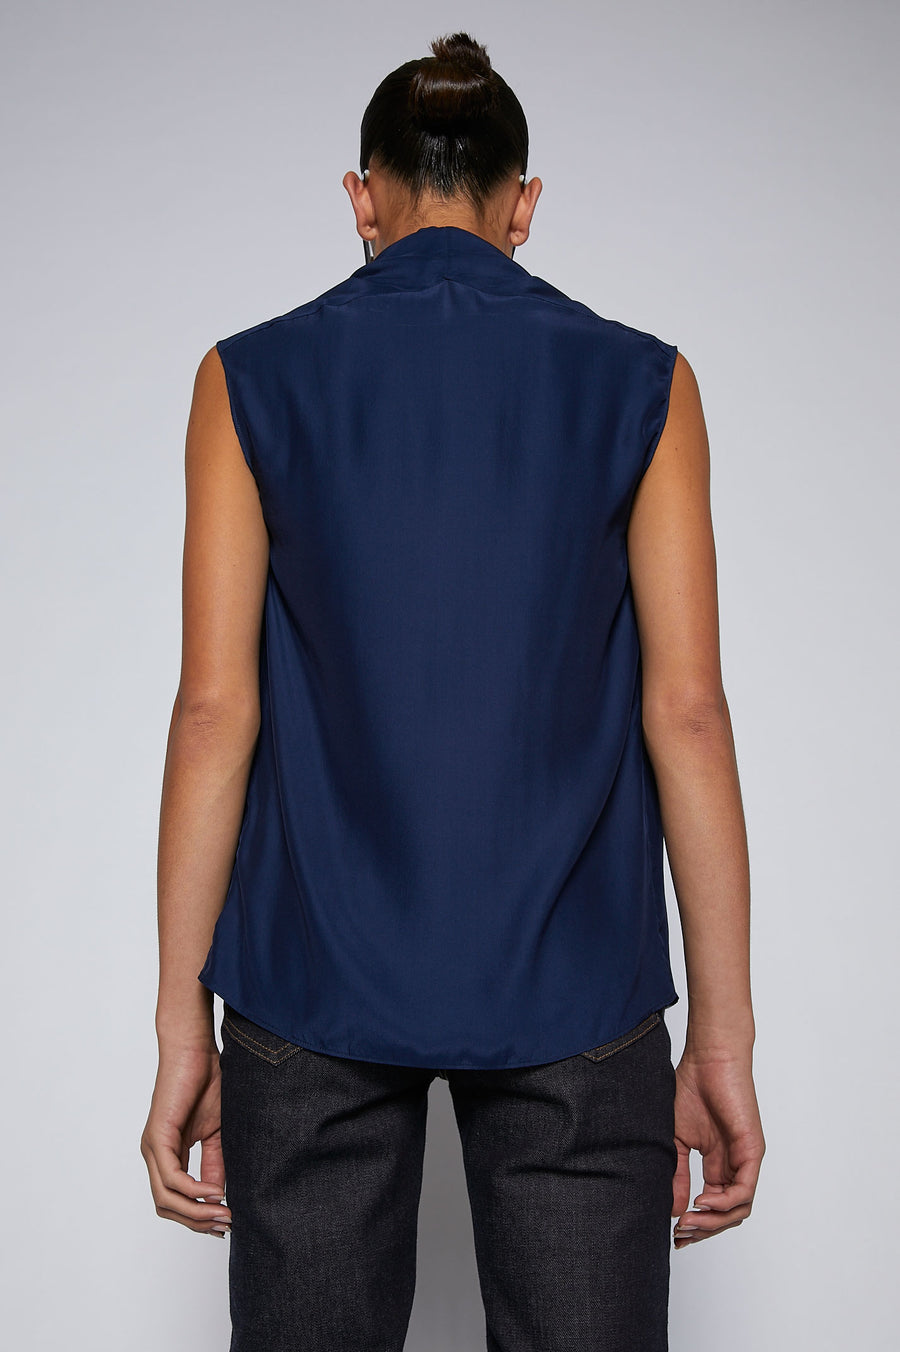 CHARMEUSE V NECK TANK NAVY, Relaxed fit, Draped, v-neckline